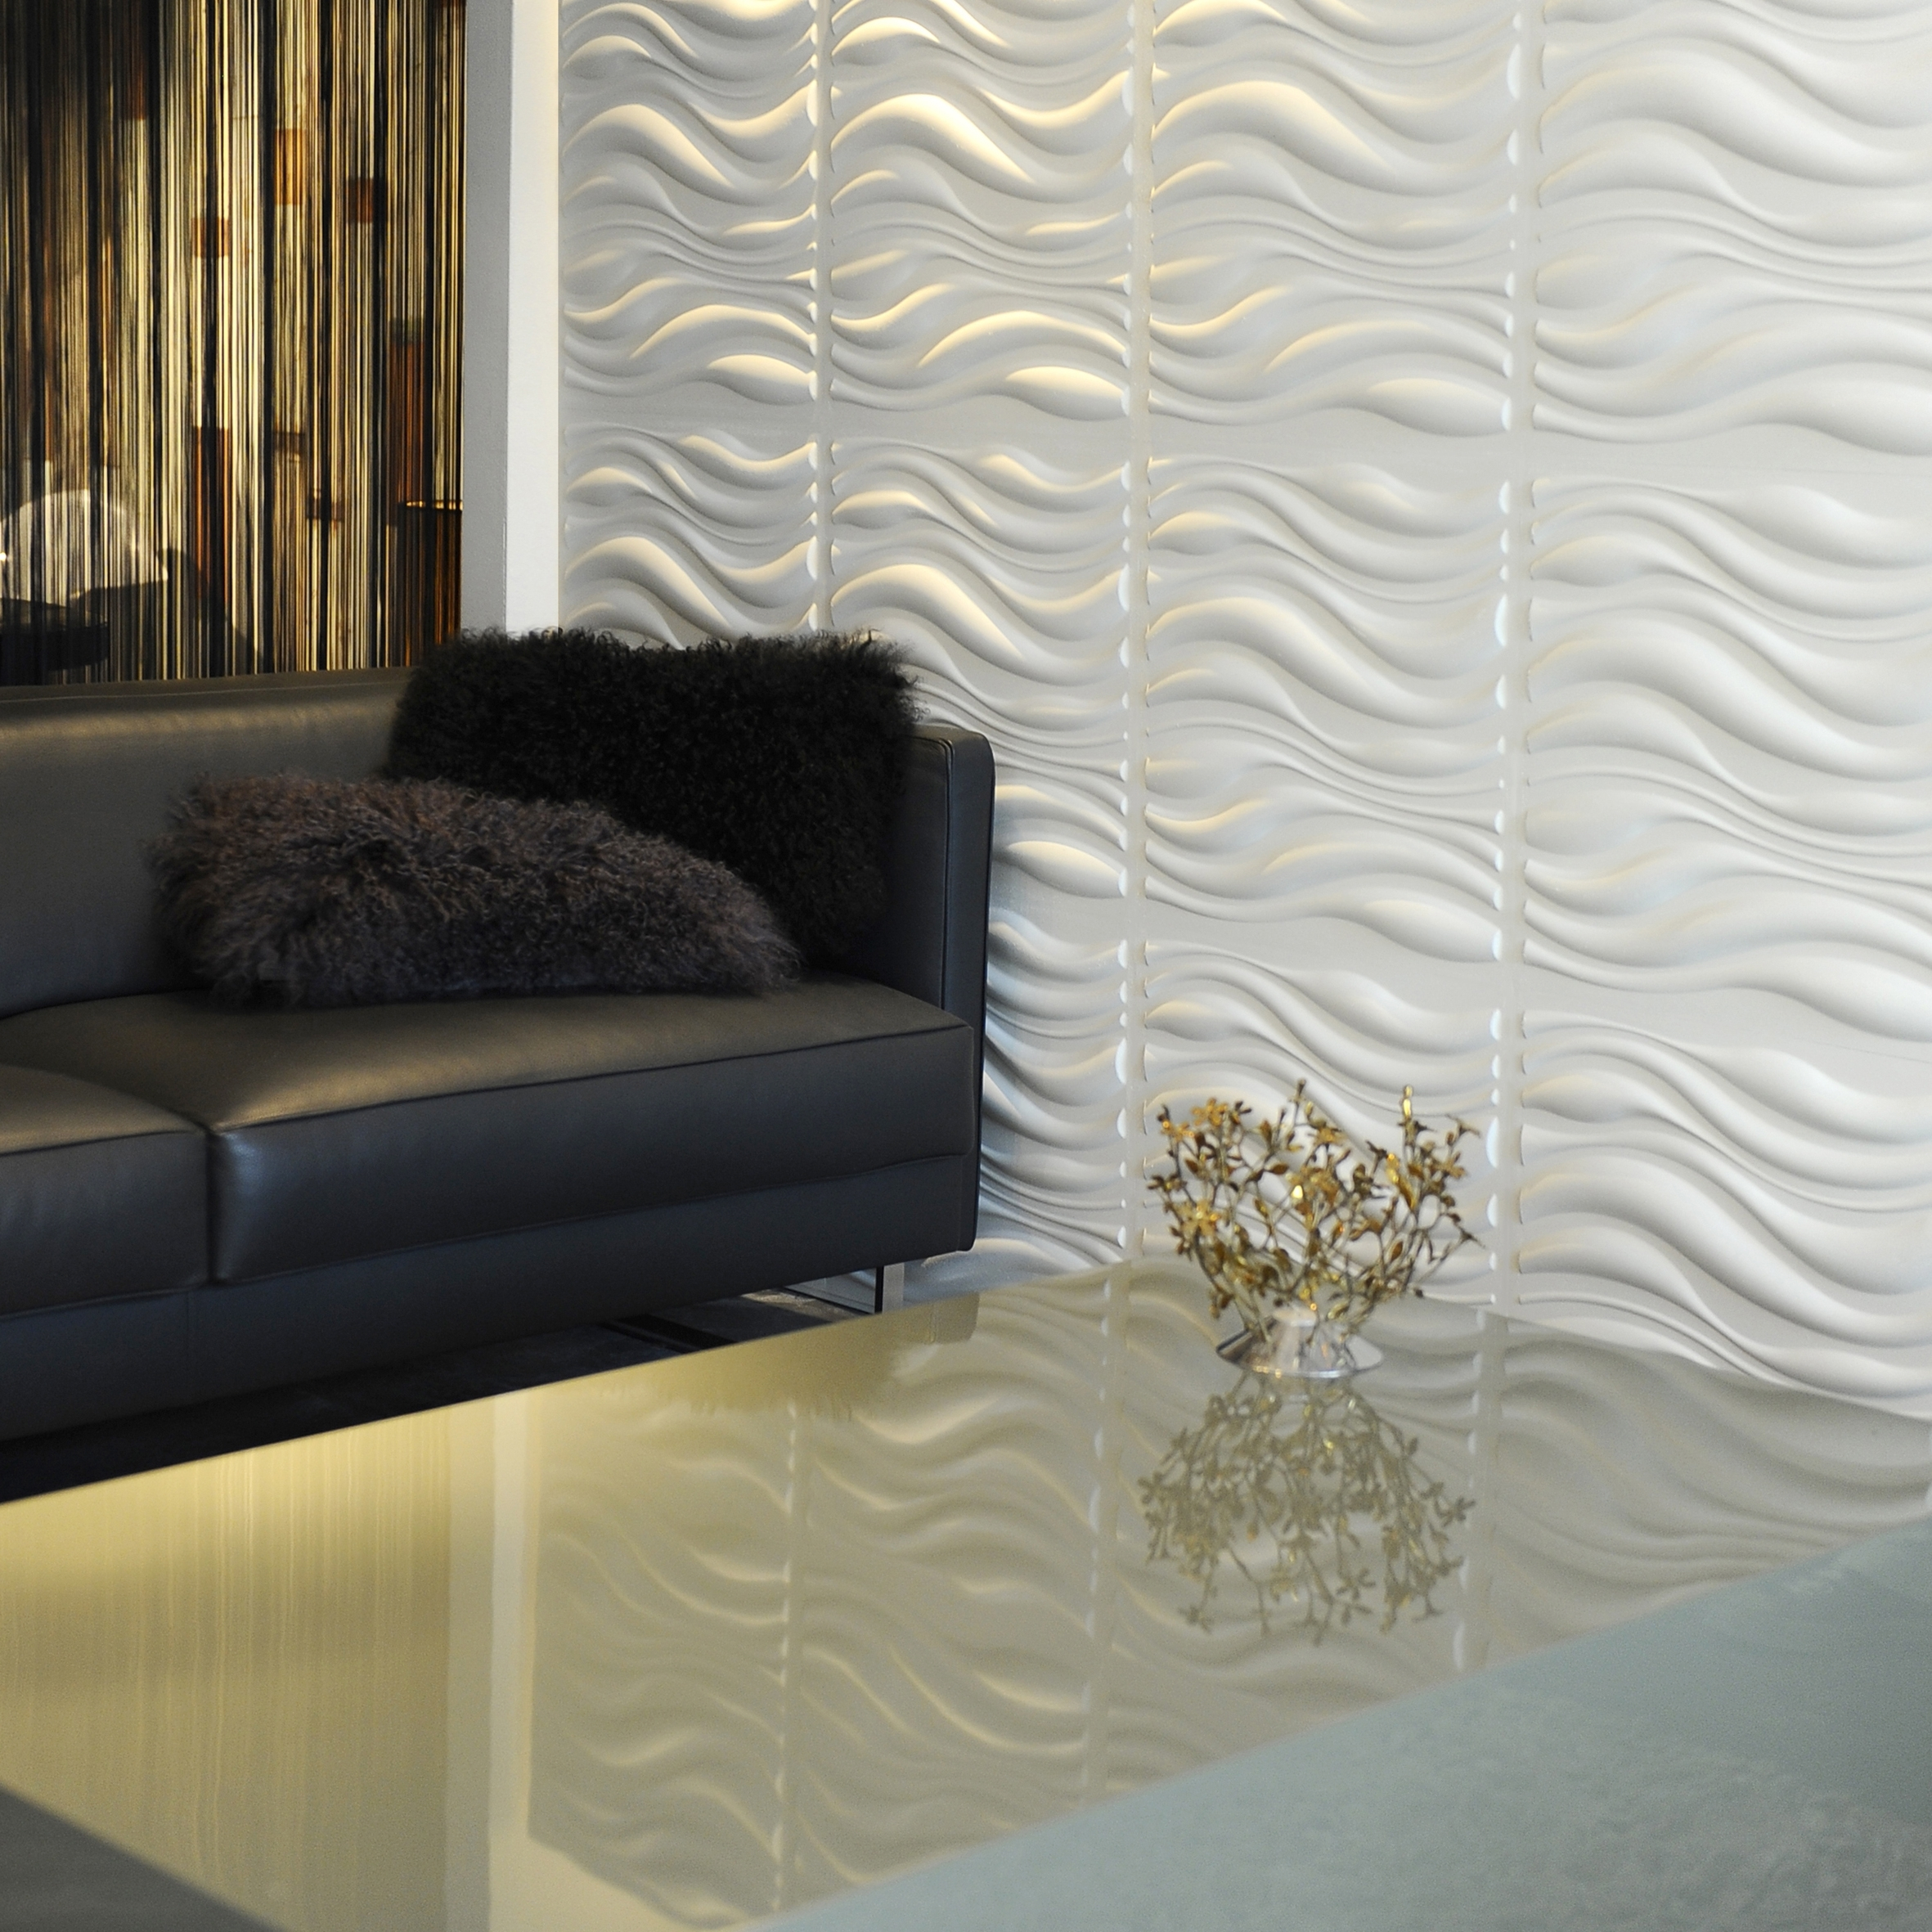 Preferred Wallart Will Bring Your Walls To Life – The Art Of Design Magazine With Venezuela Wall Art 3d (View 6 of 15)